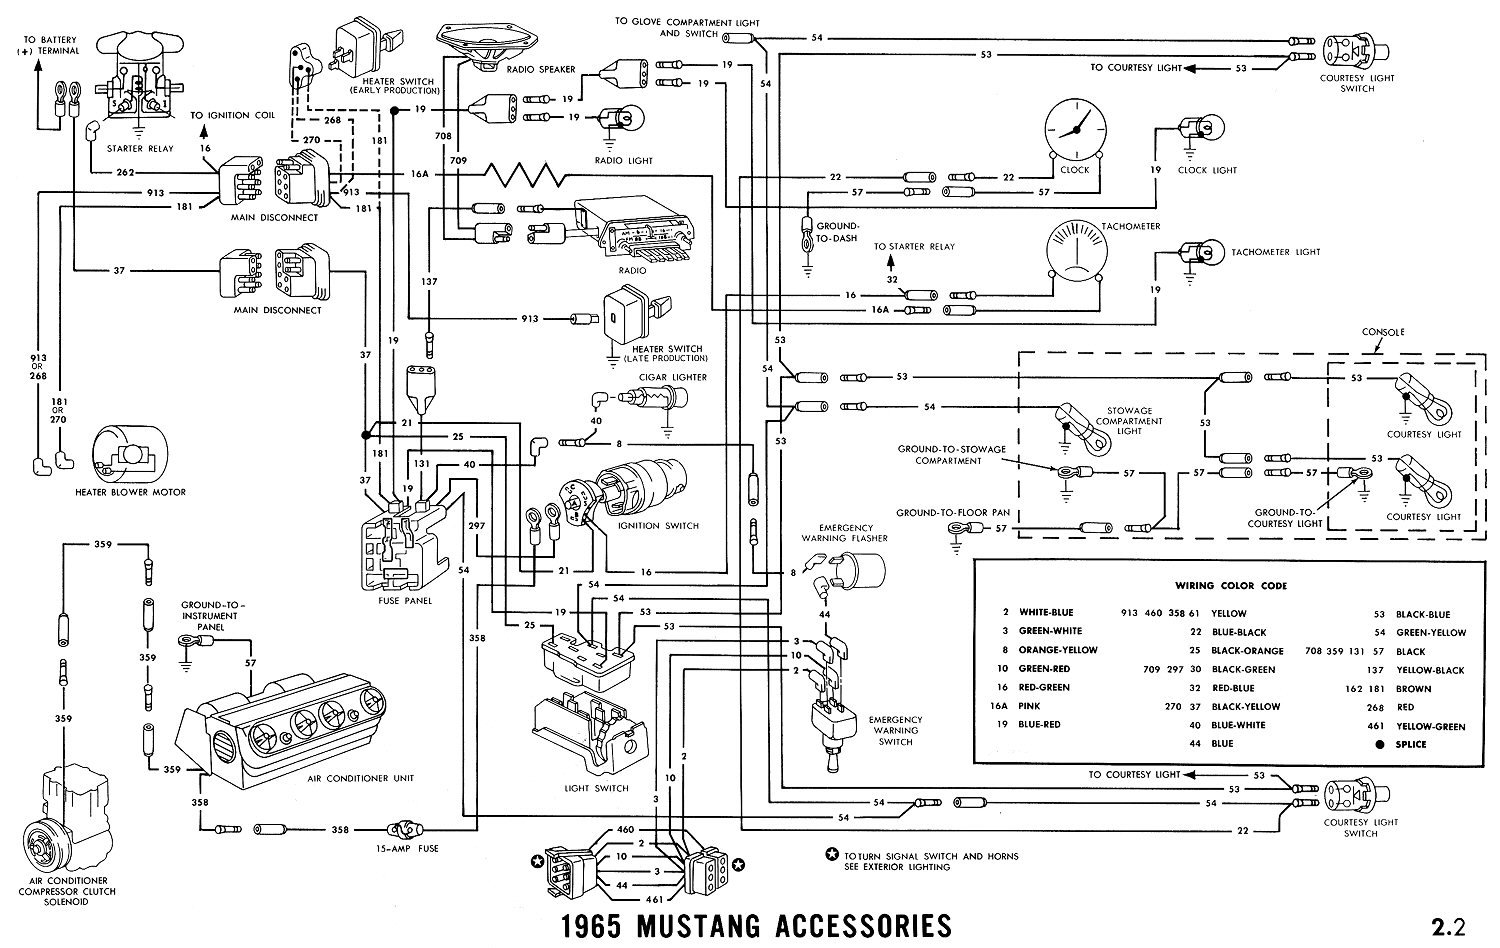 Diagram 2012 Mustang Wiring Diagram Cigarette Lighter Full Version Hd Quality Cigarette Lighter Hpvdiagrams Roofgardenzaccardi It